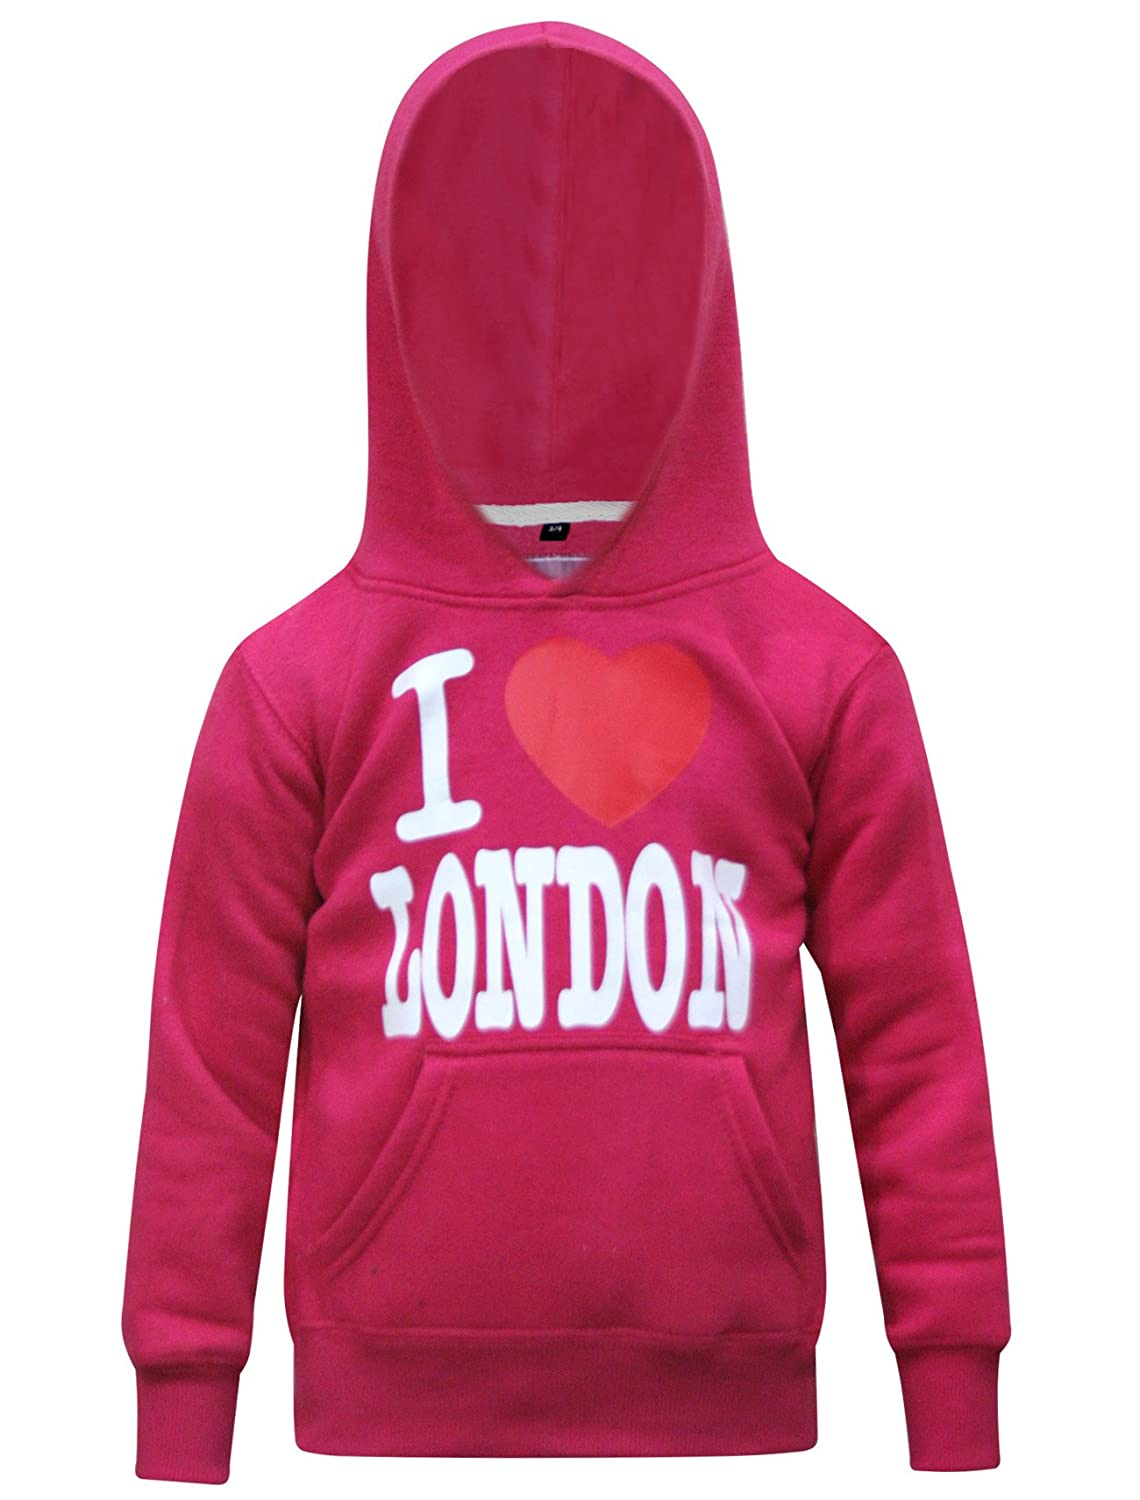 Curious Soul Printed I Love London Hot Pink Sweatshirt